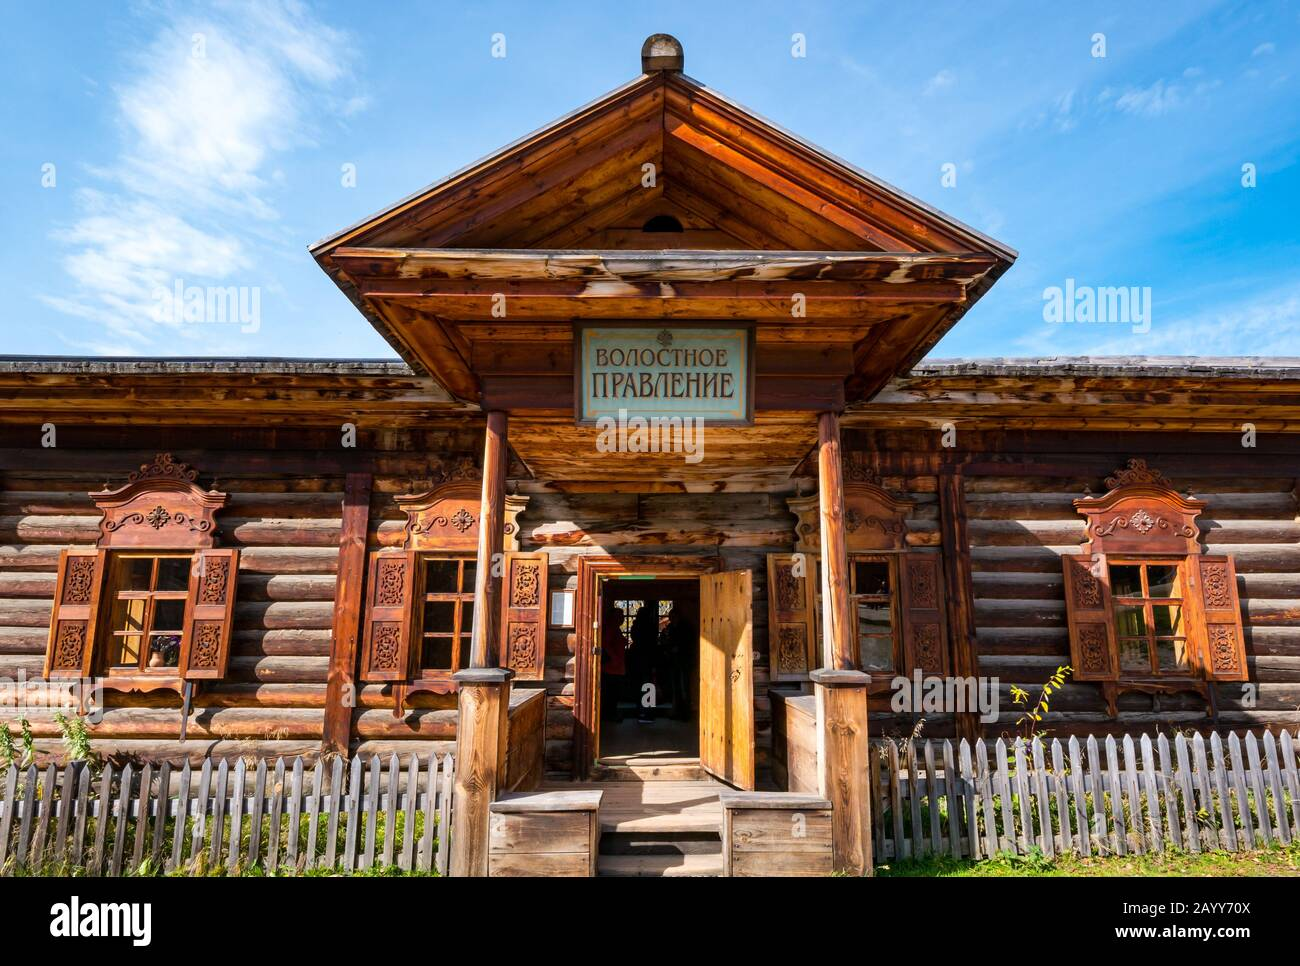 Local government office traditional wooden building, Taltsy Museum of Wooden Architecture, Irkutsk Region, Siberia, Russia Stock Photo